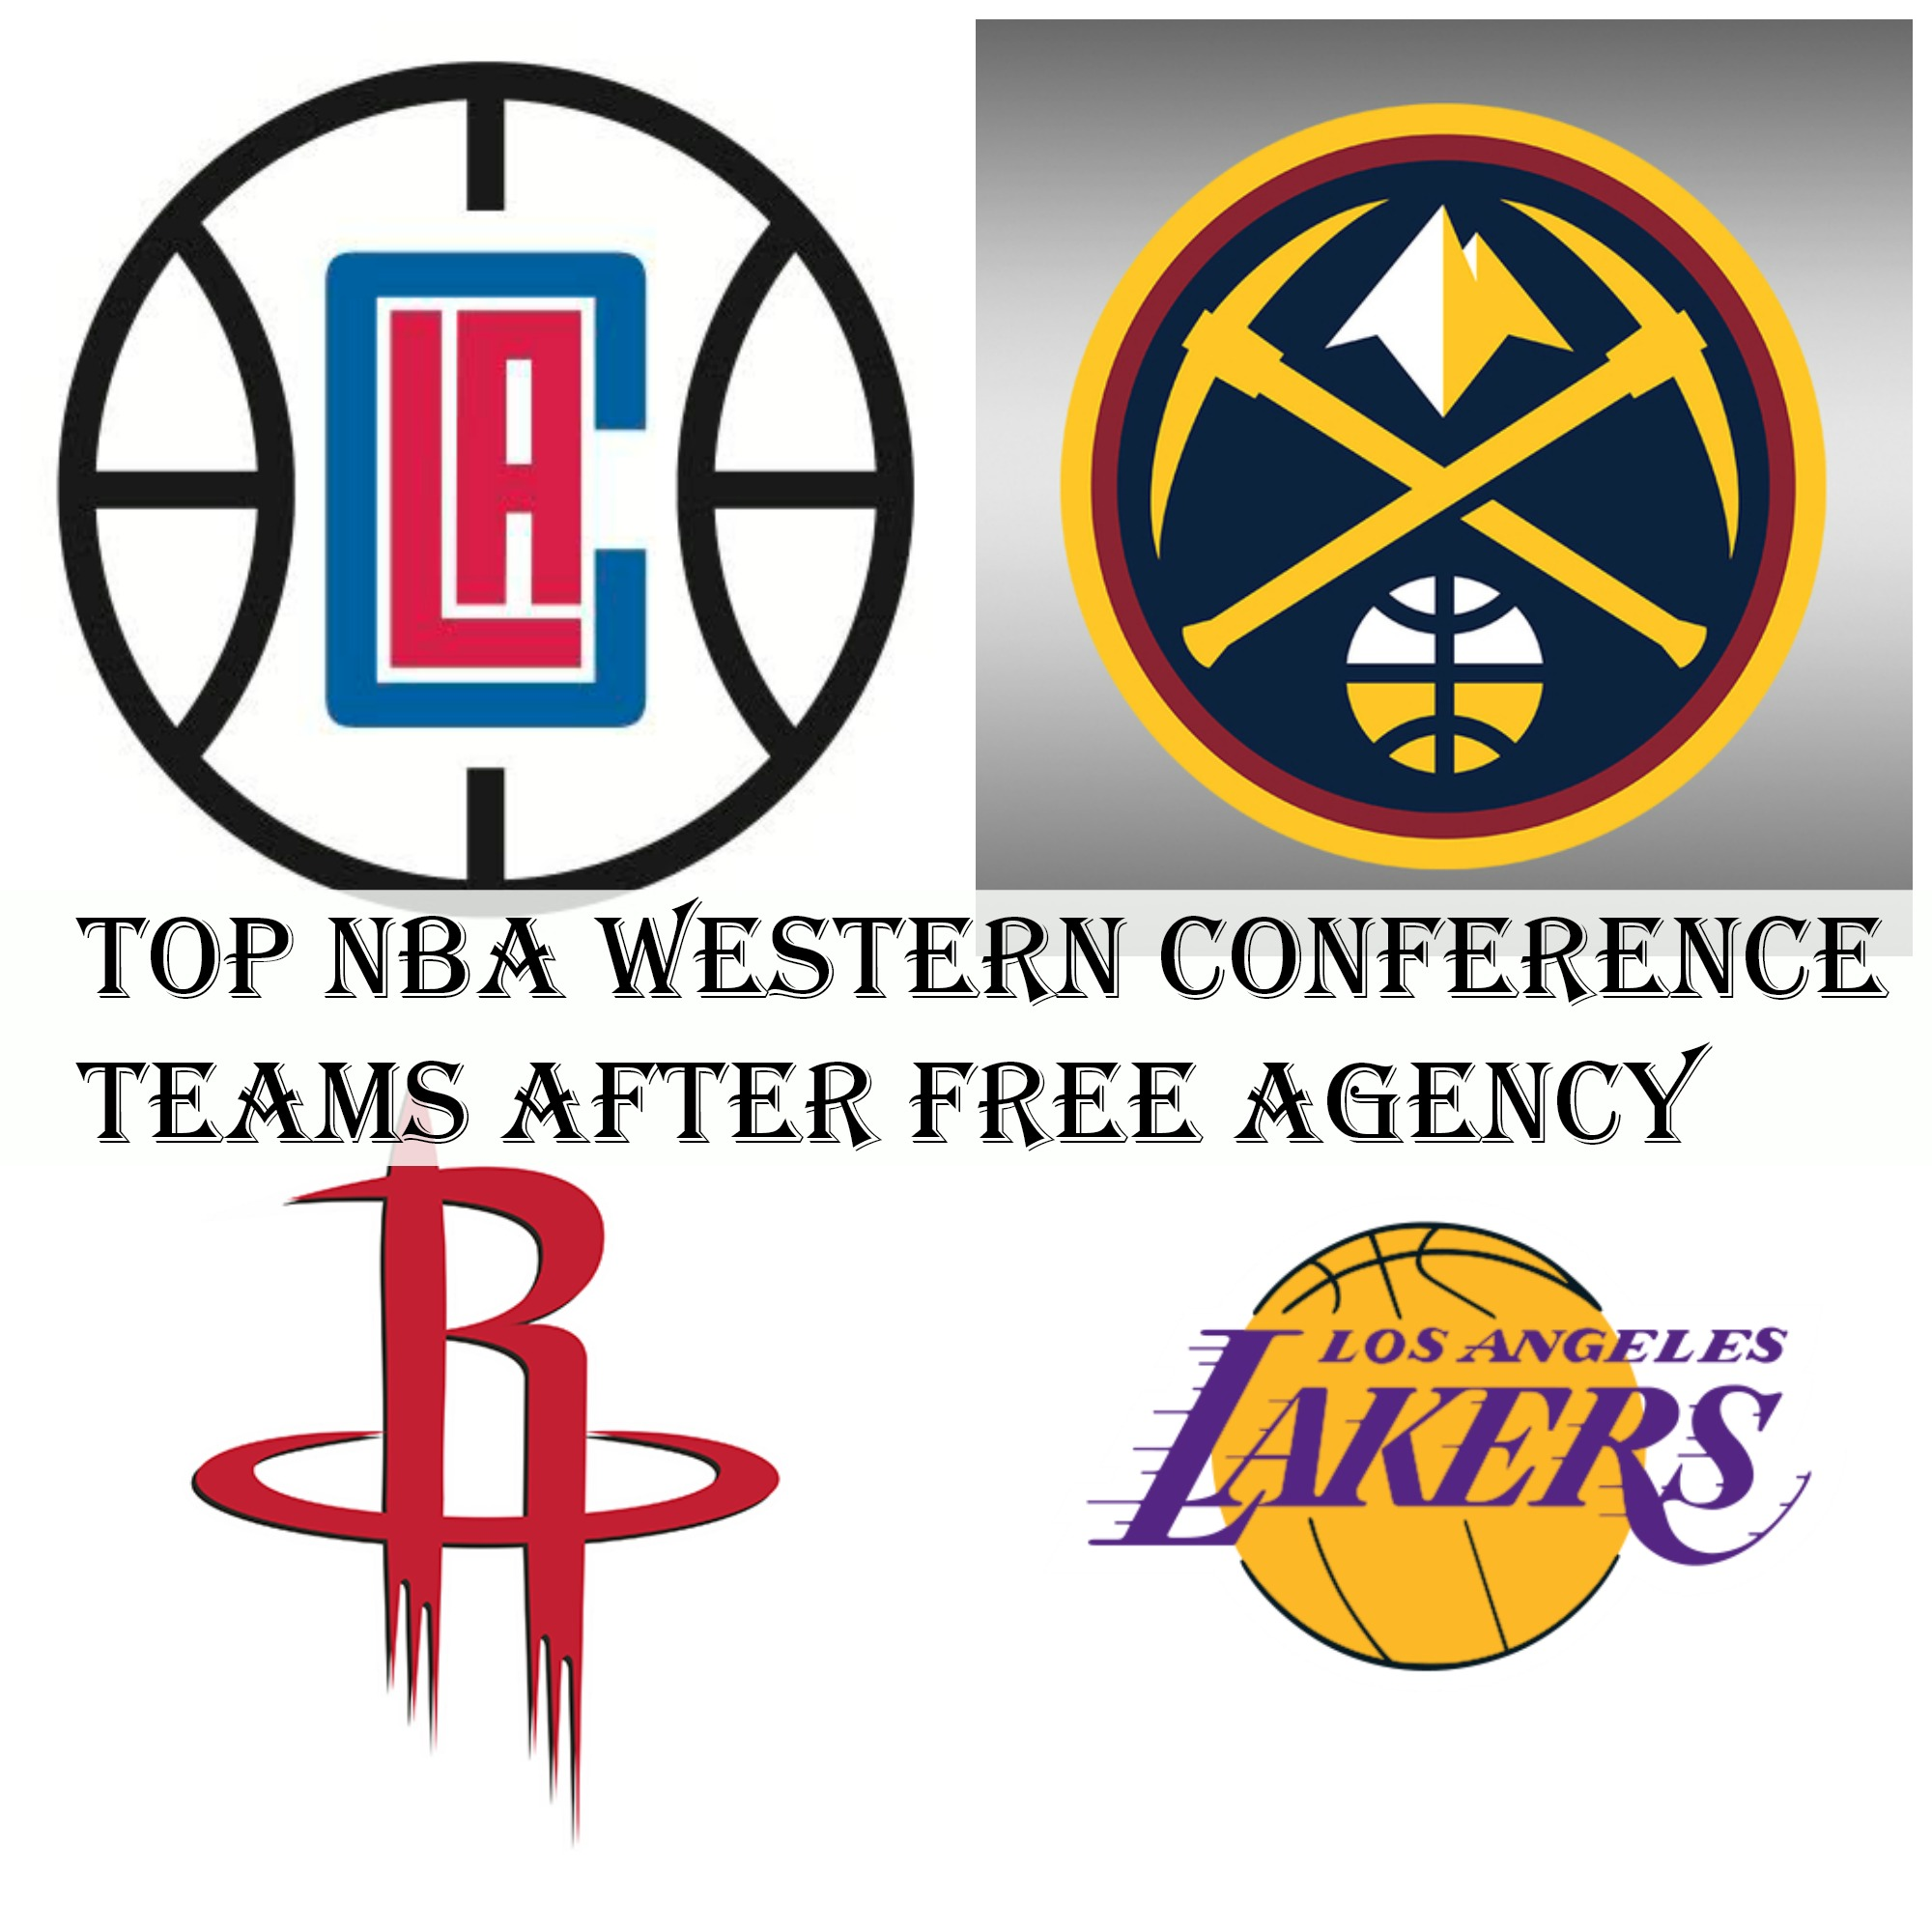 Top NBA Western Conference Teams After Free Agency